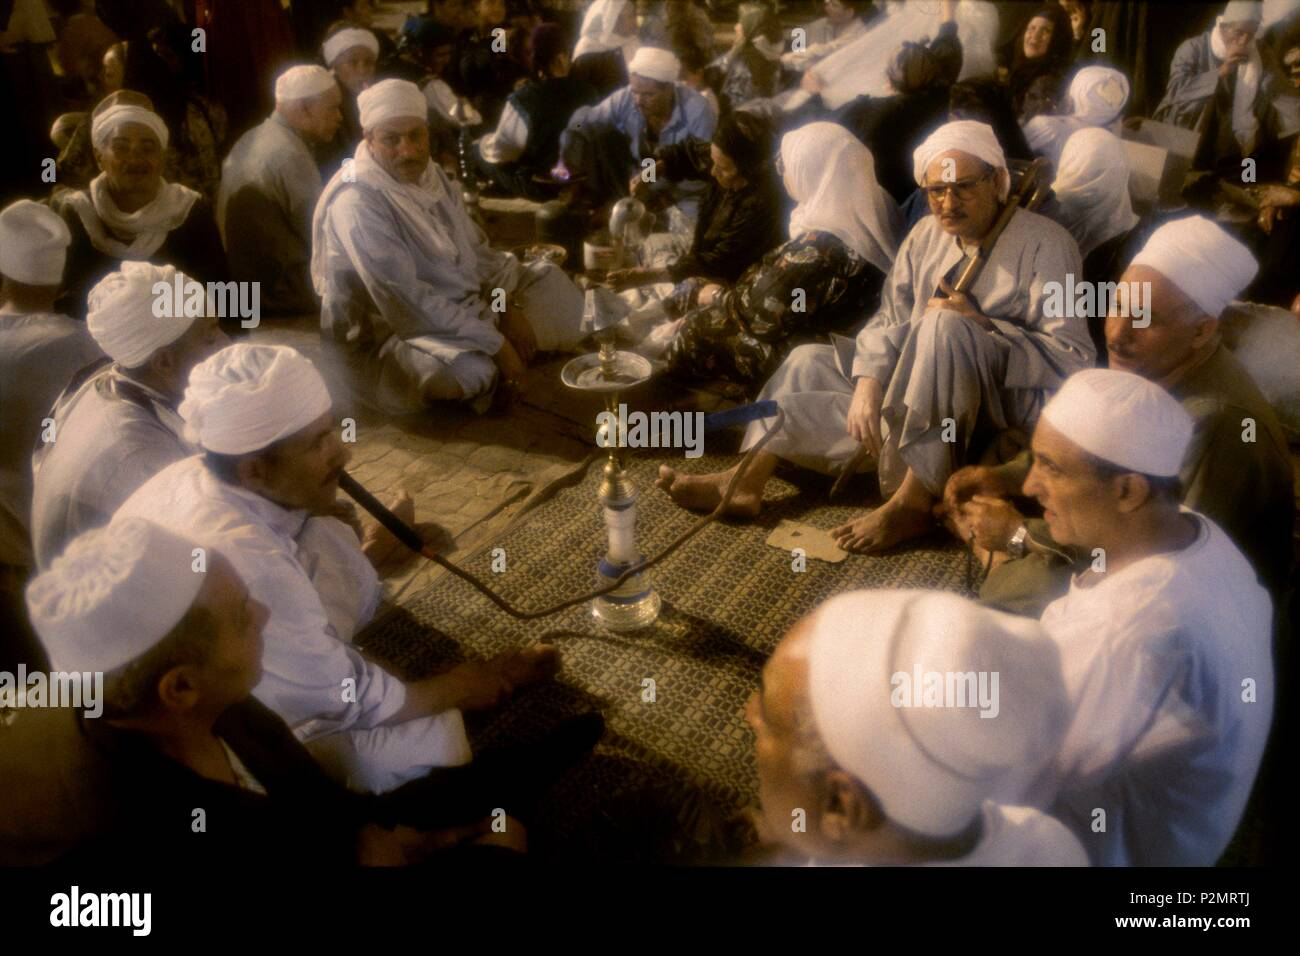 Egypt, Tanta, 1996, during the three days of festival (mouled) for Sidi Ahmad el-Badaoui, greatest Muslim saint of the country, pilgrims came with their families and get together on mats and carpets and eat, smoke hooka around Tanta's mosque - Stock Image